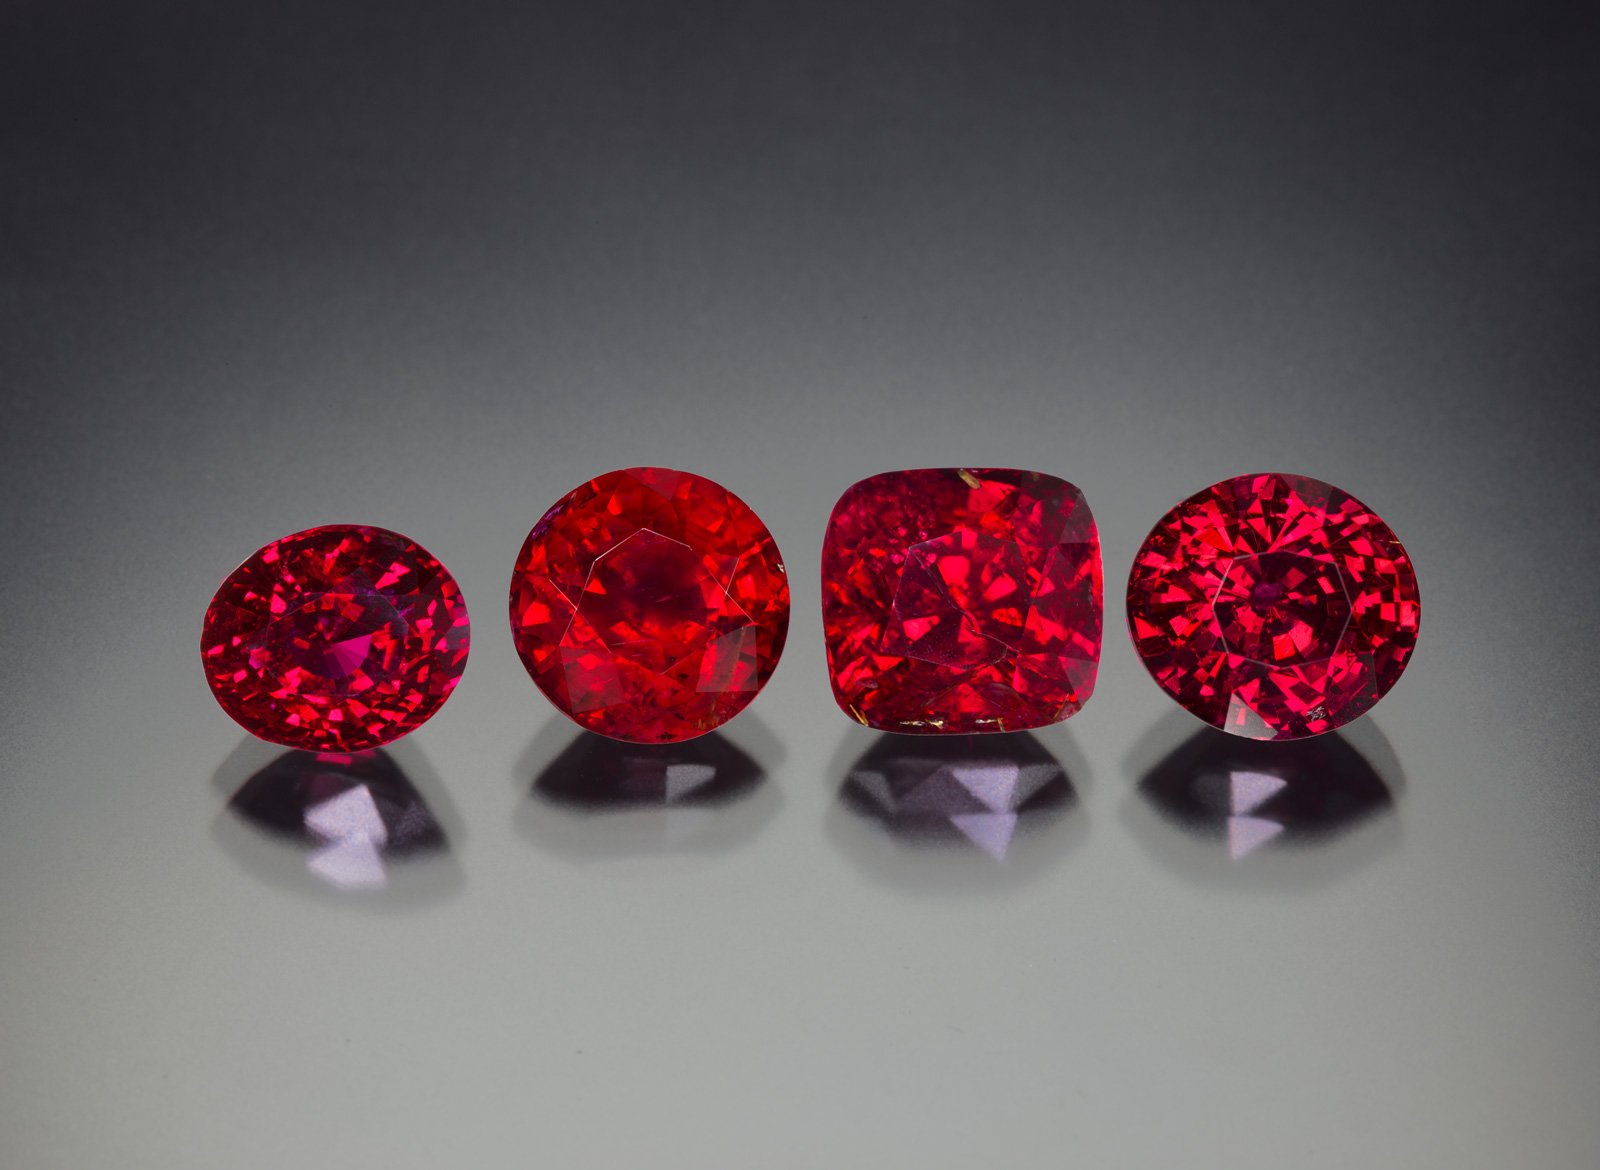 Four untreated rubies from the new find in Madagascar, ranging in size from 4.0 to 6.5 ct. As can be seen, the new production is extremely gemmy. Photo: Wimon Manorotkul/Lotus Gemology.